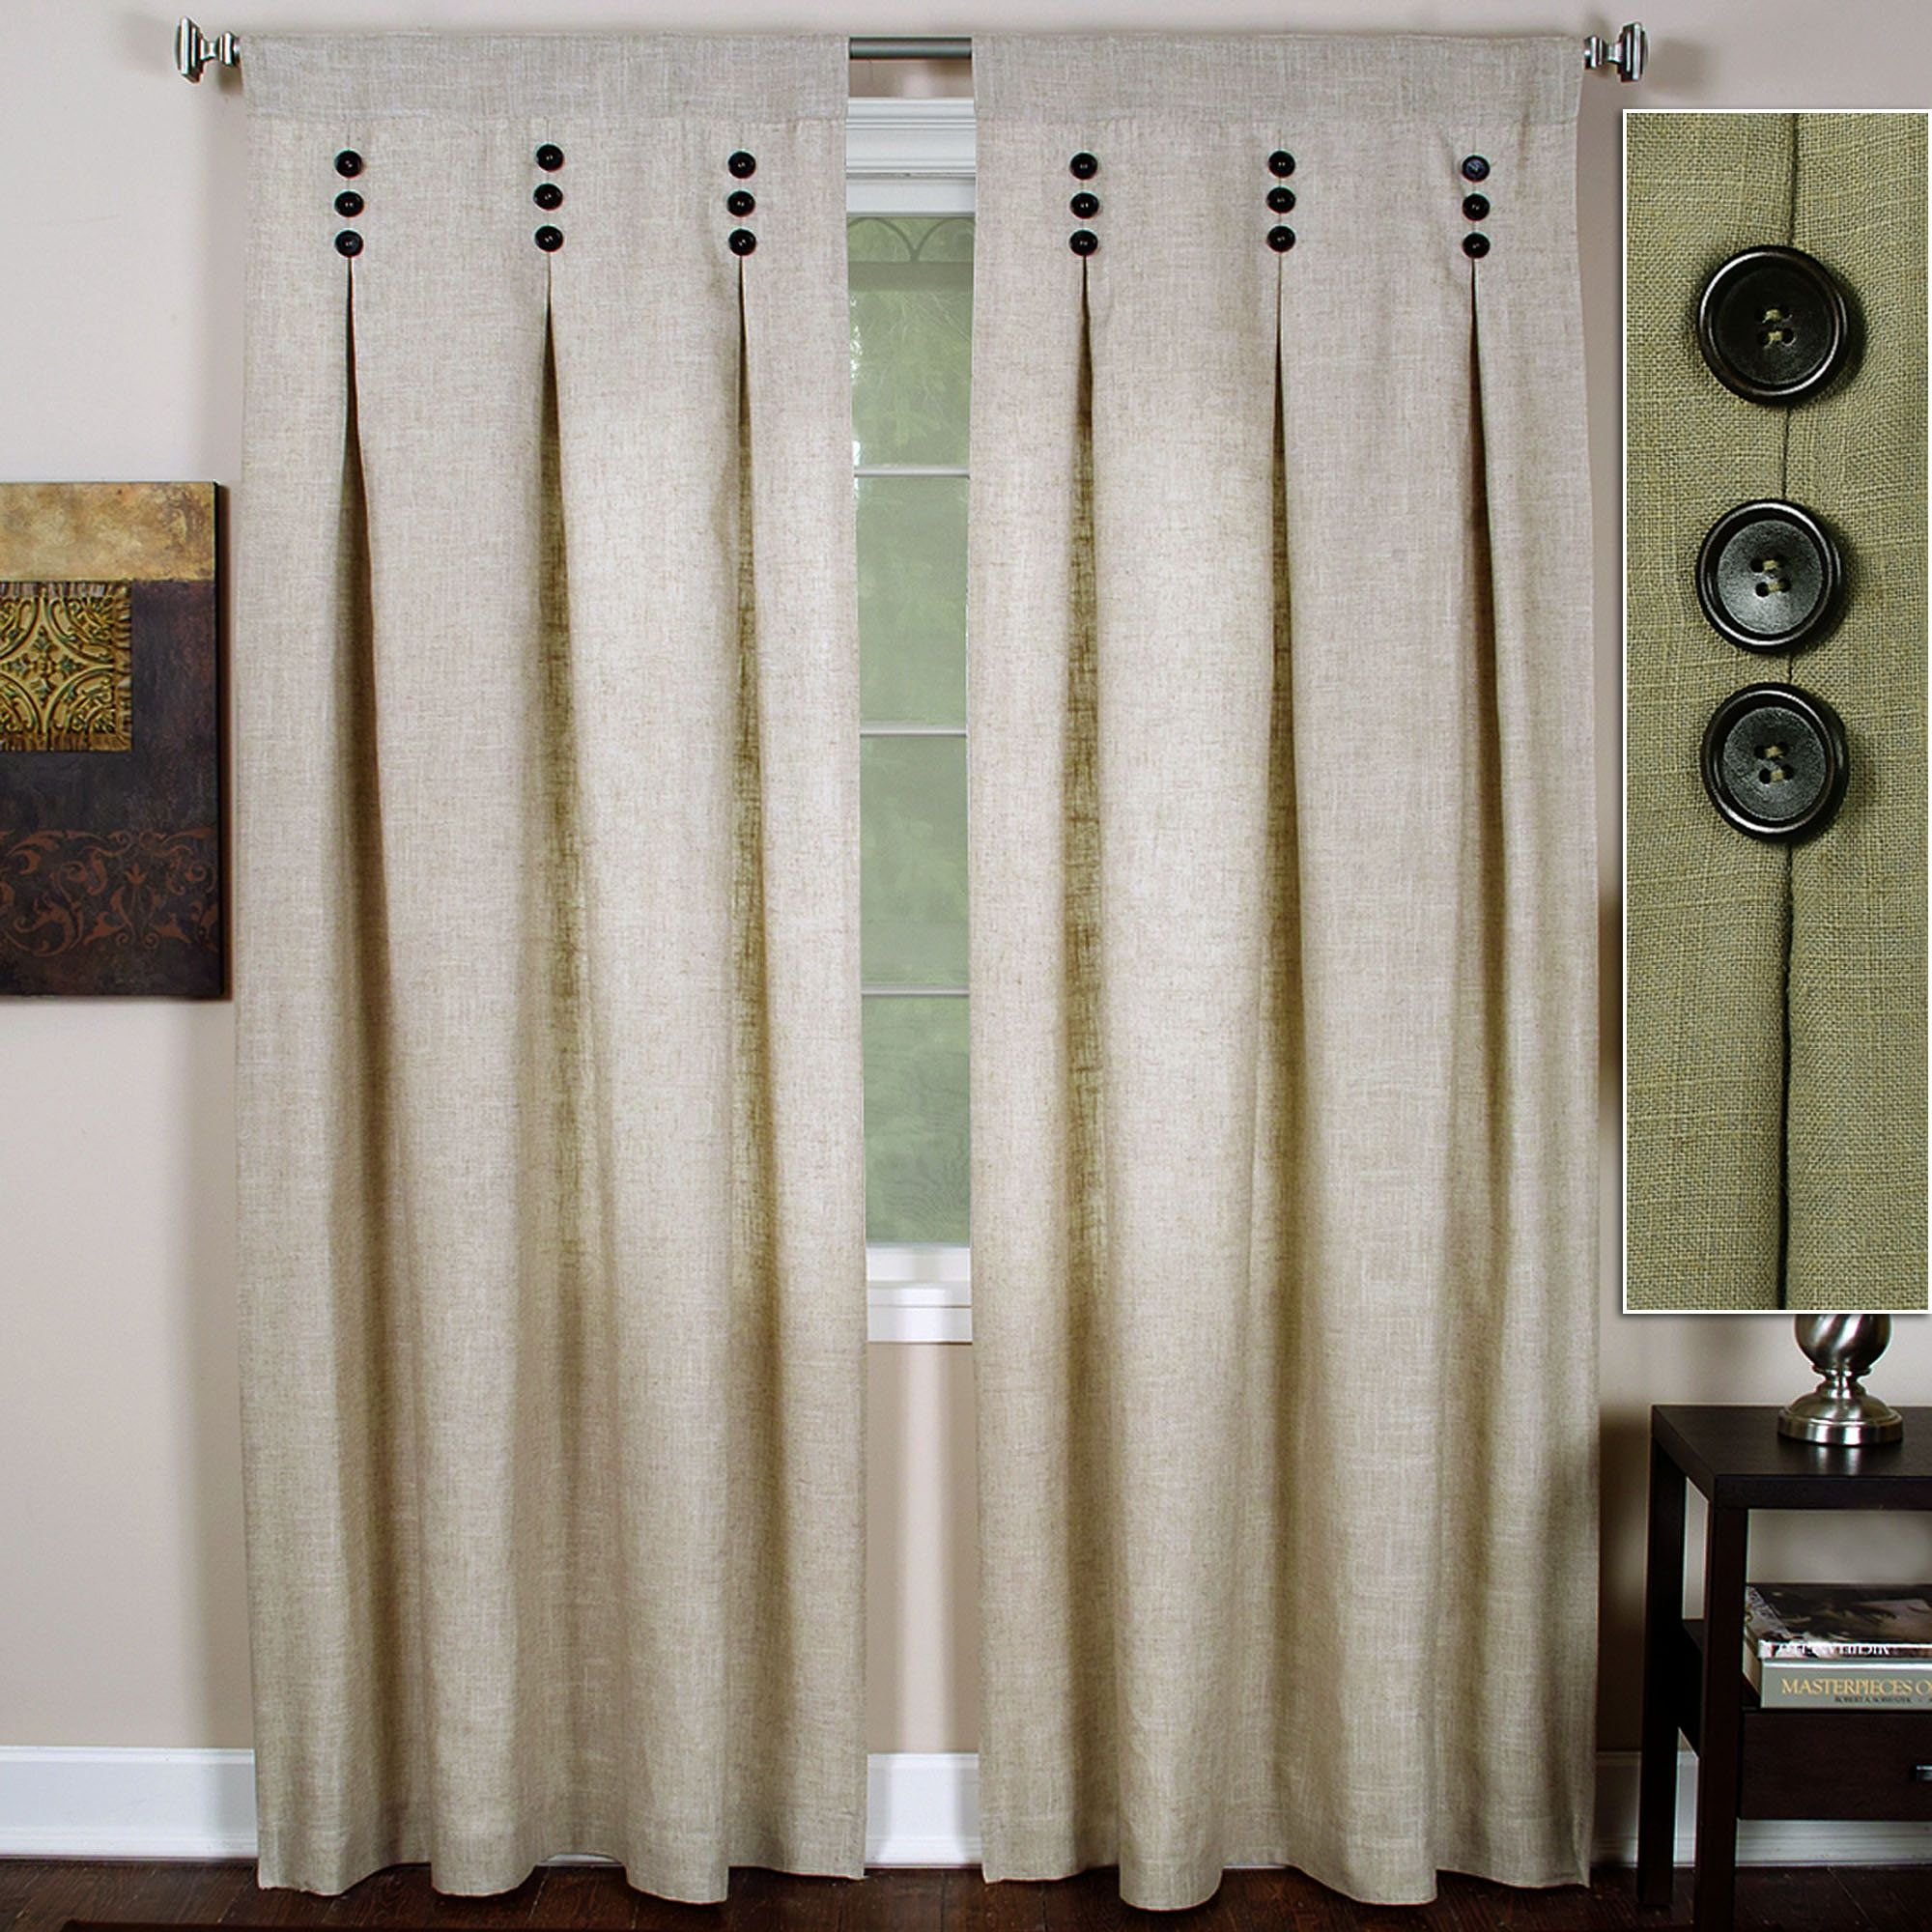 drapes | Modern curtains and drapes – Inverted Pleat Curtains ...